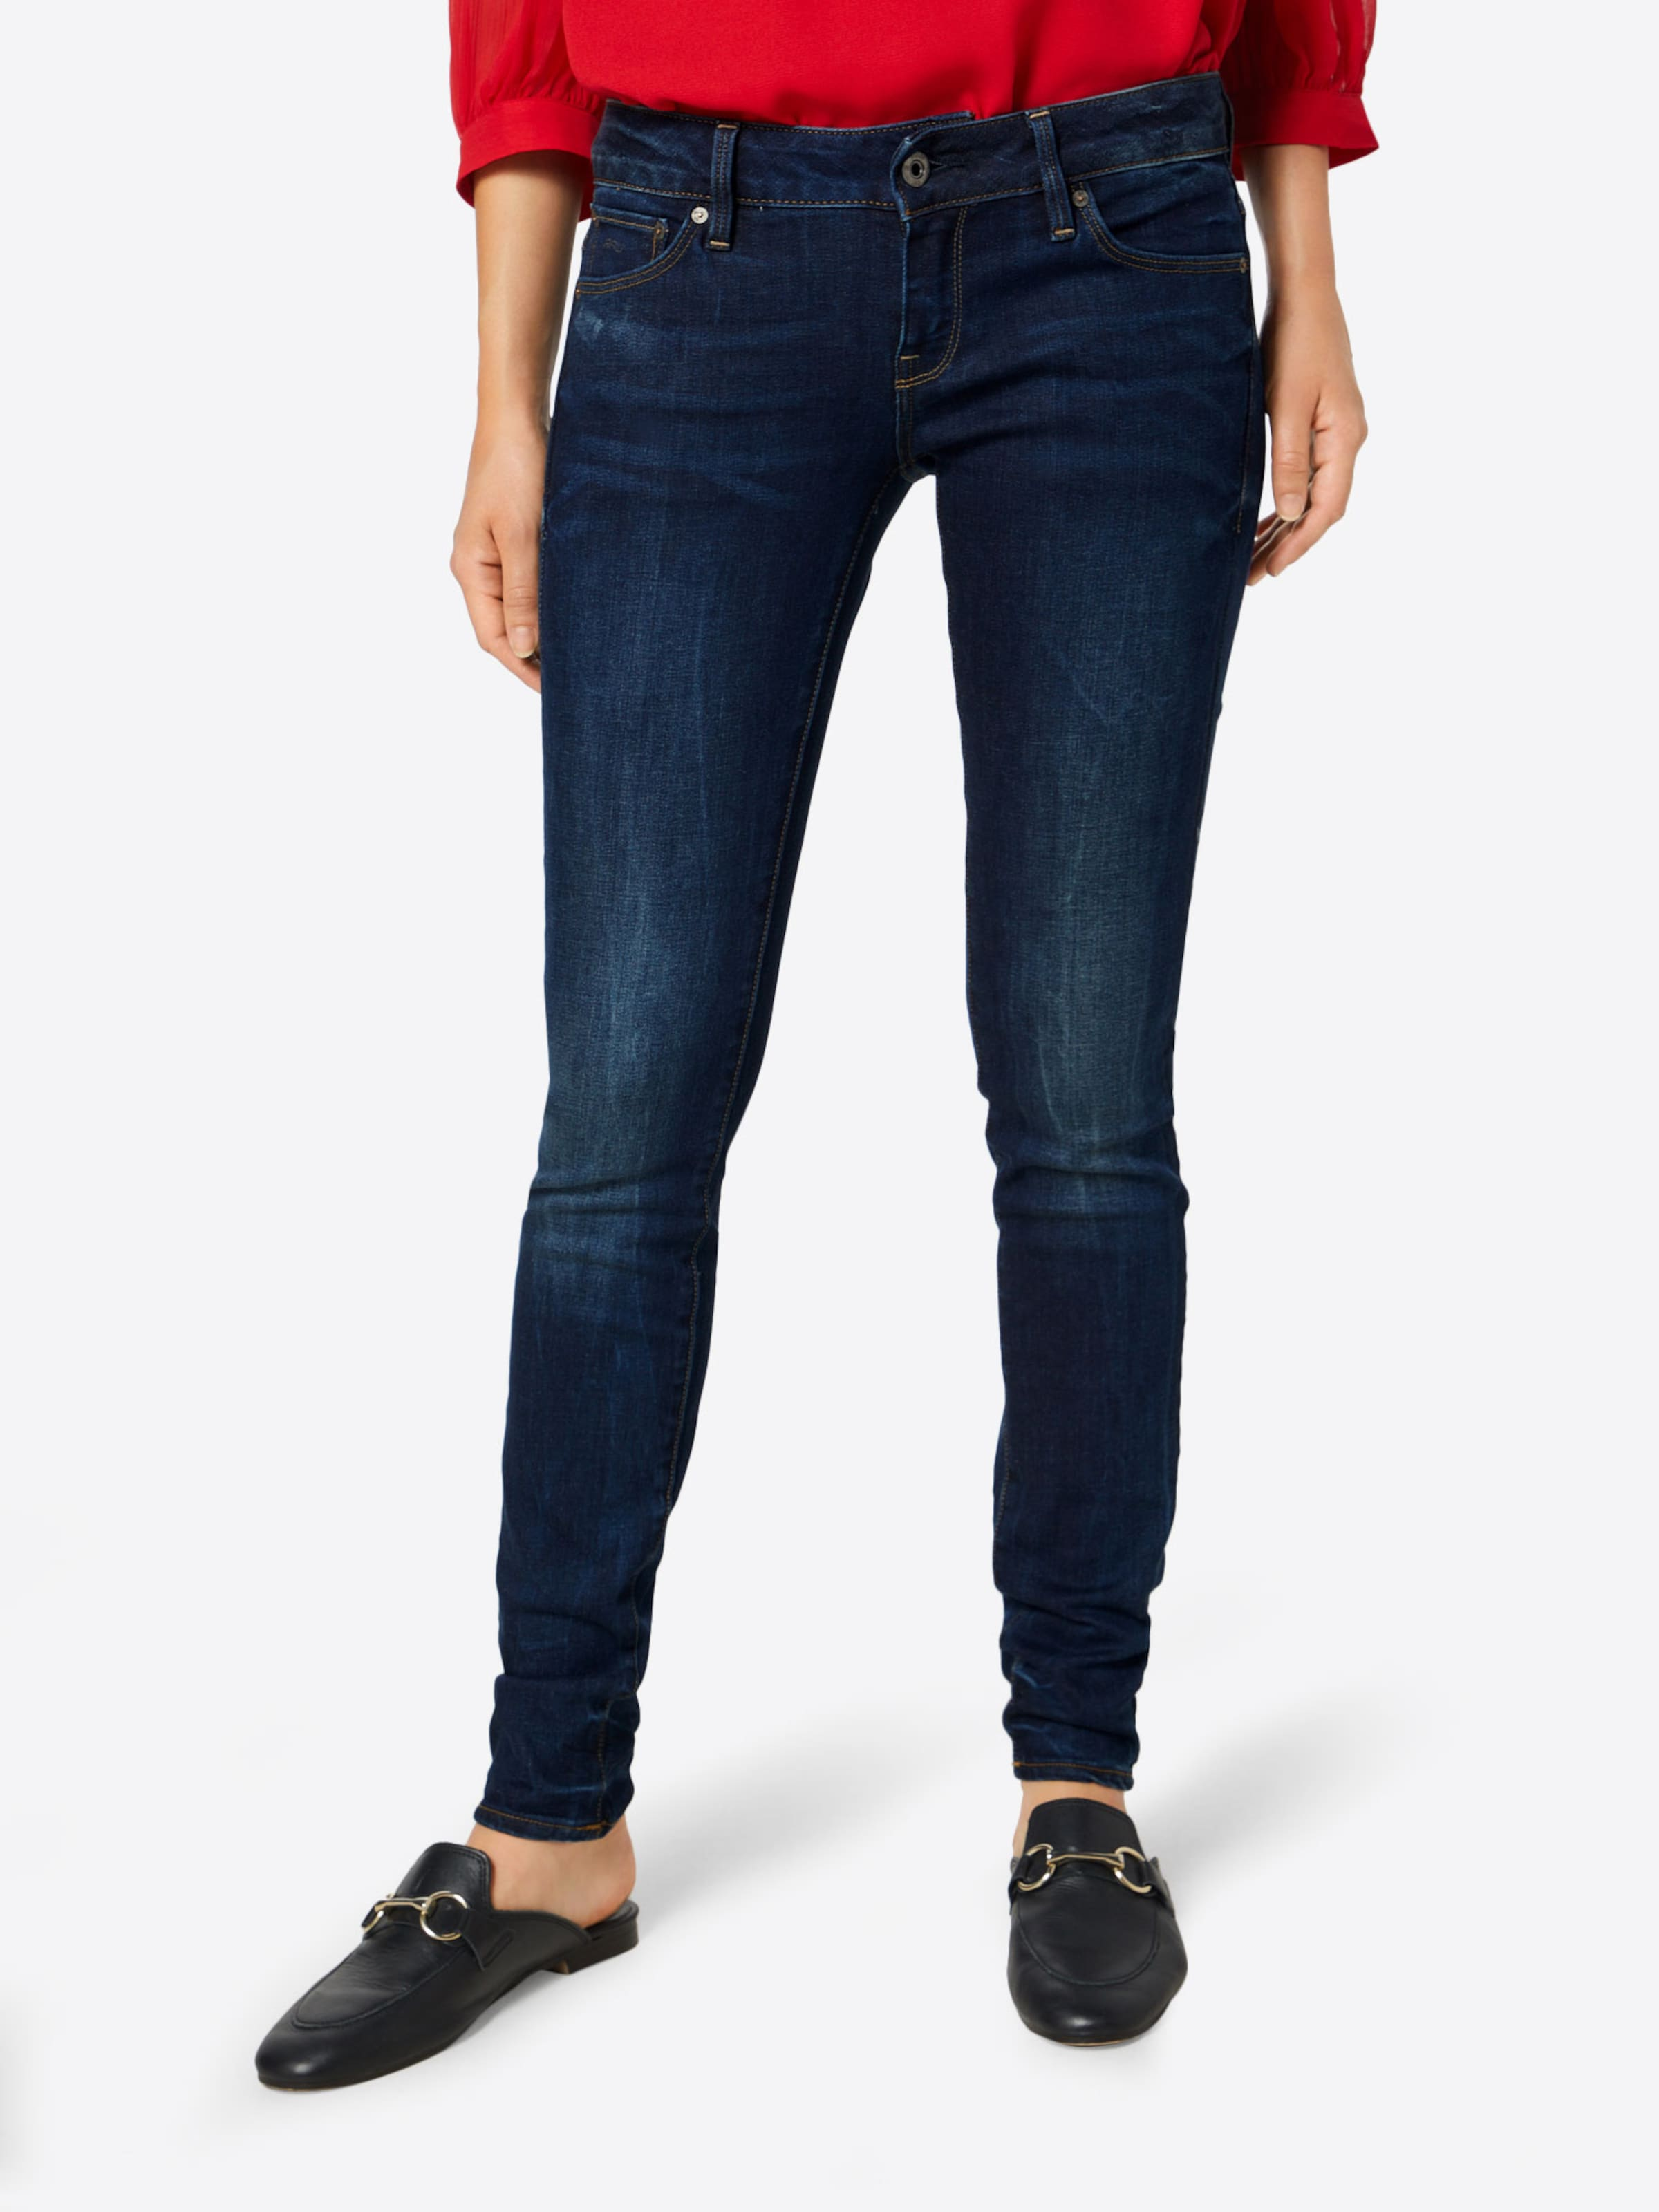 star Low '3301 Blue Raw Waist' Denim Skinny G In XwPOkn08